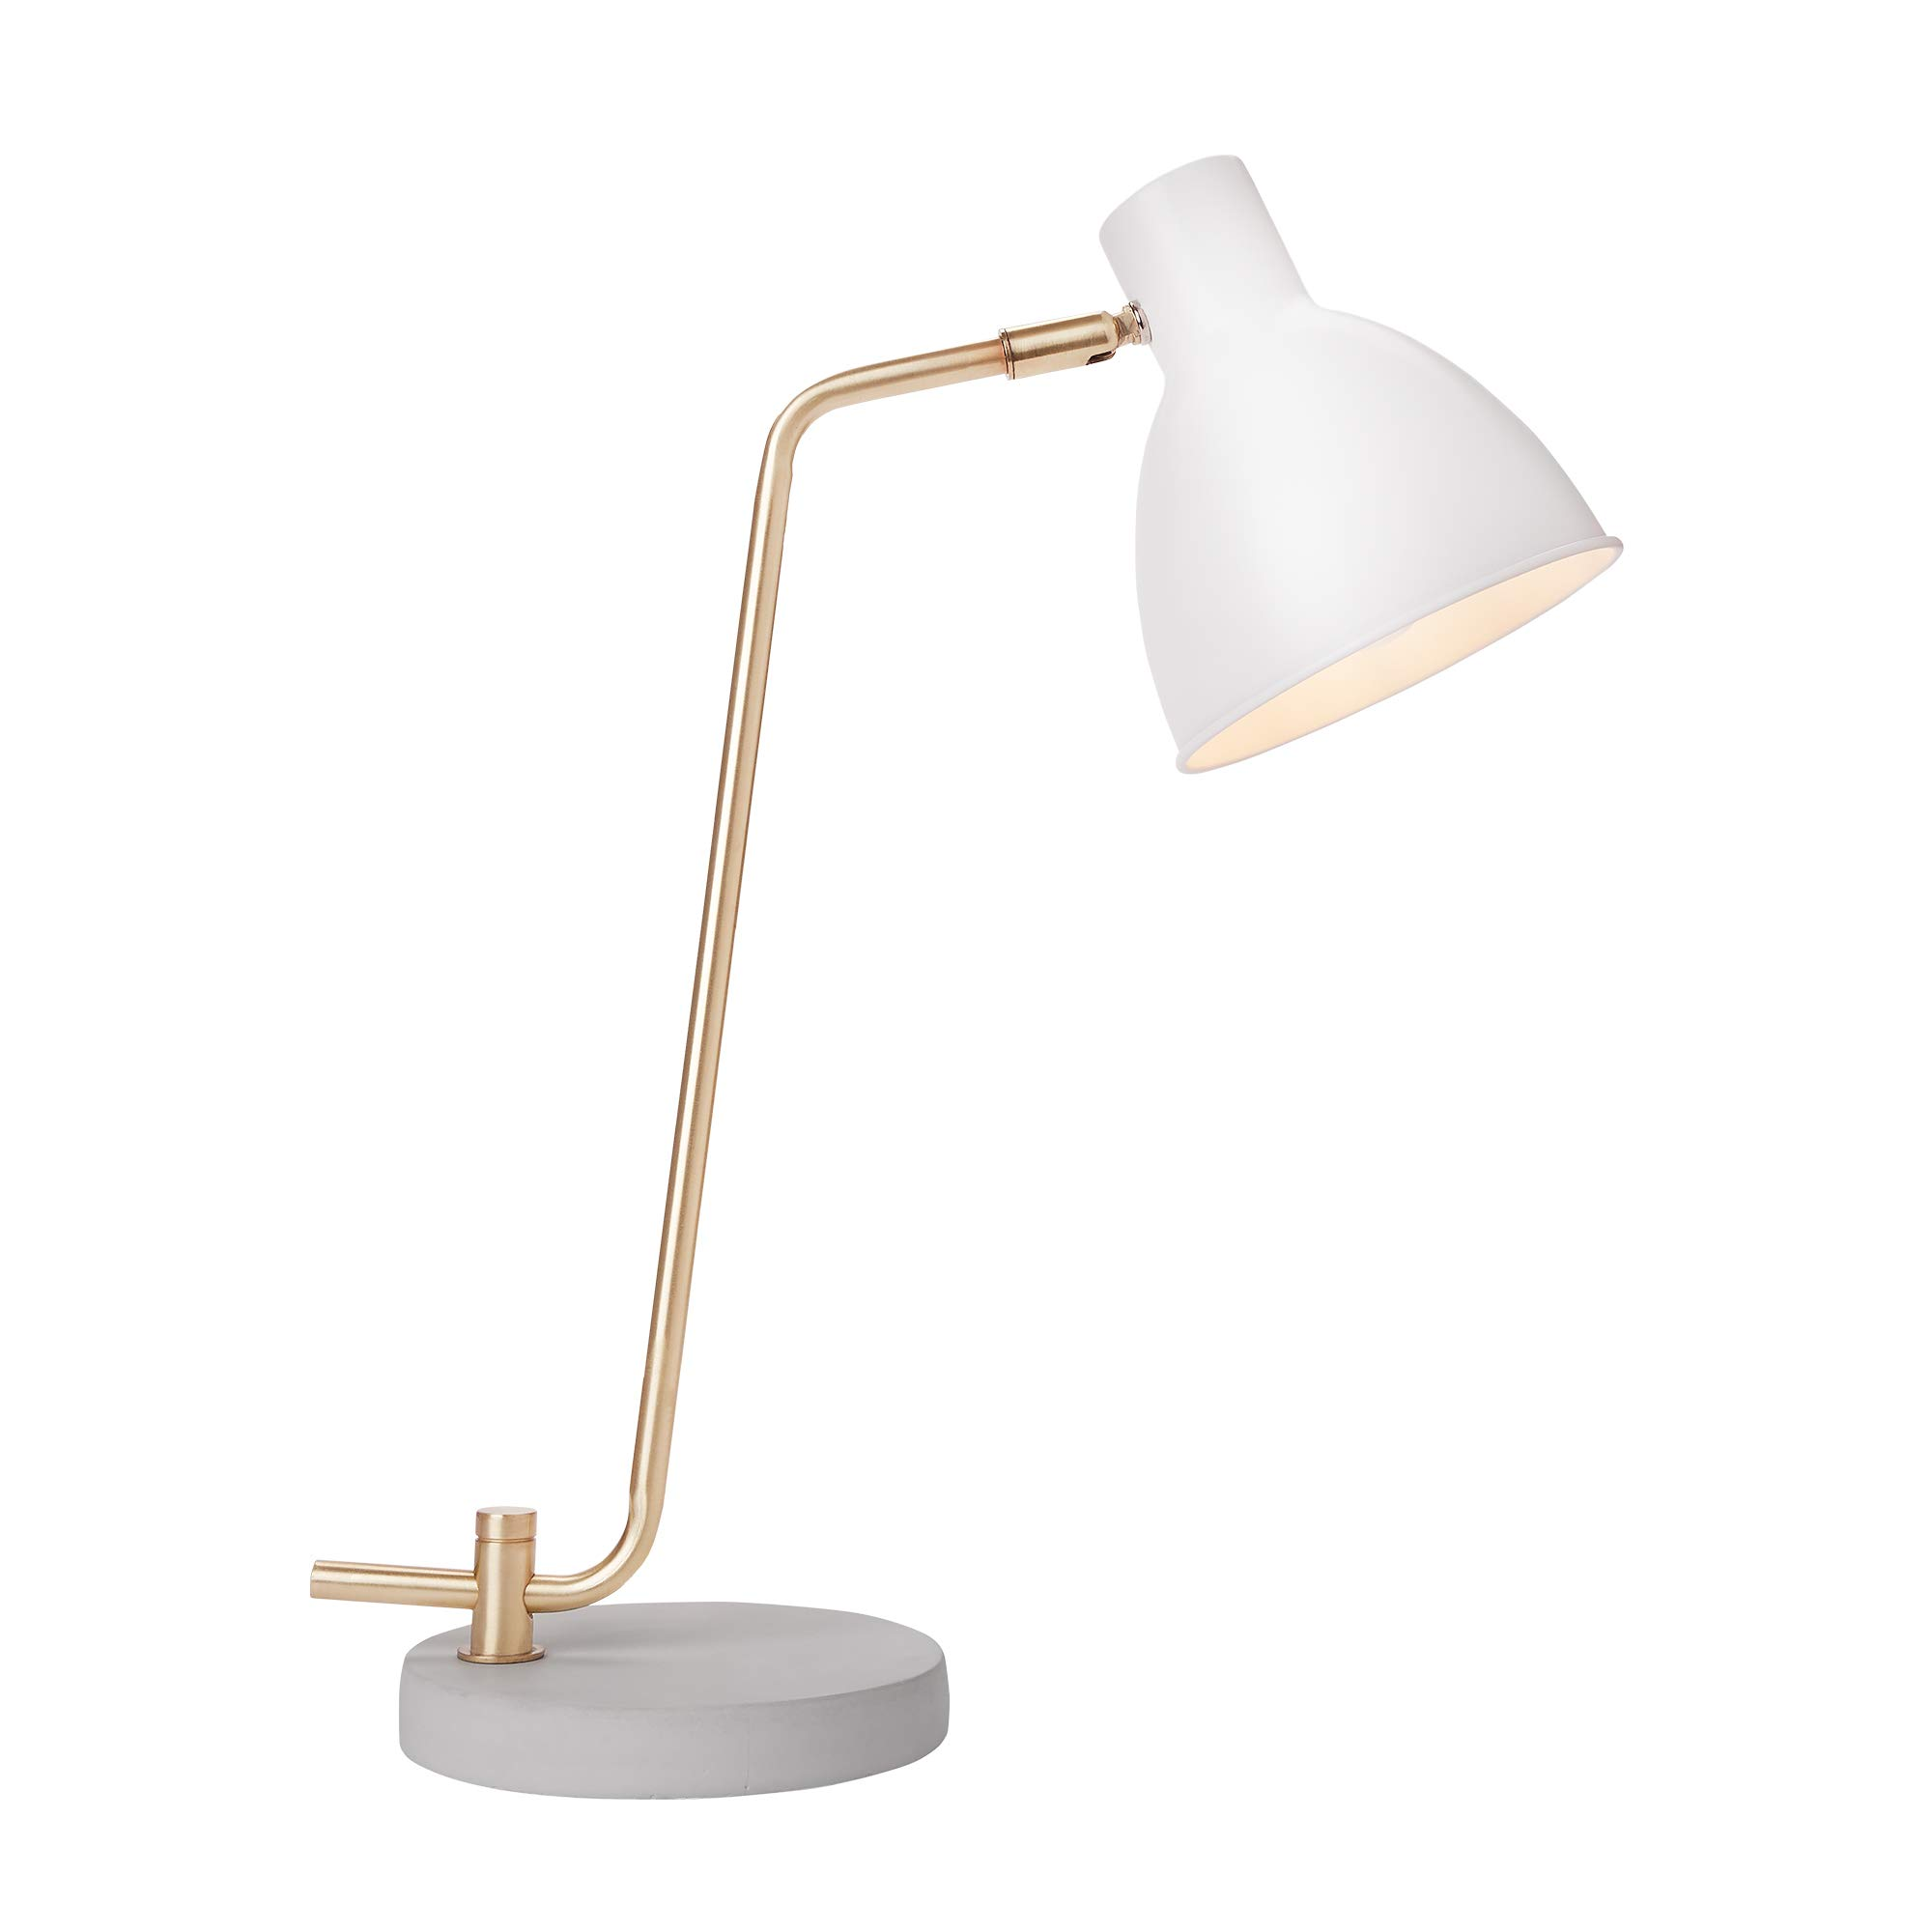 Newhouse Lighting NHDK-AM-WH Amelia Contemporary Table Lamp with LED Bulb Included, White